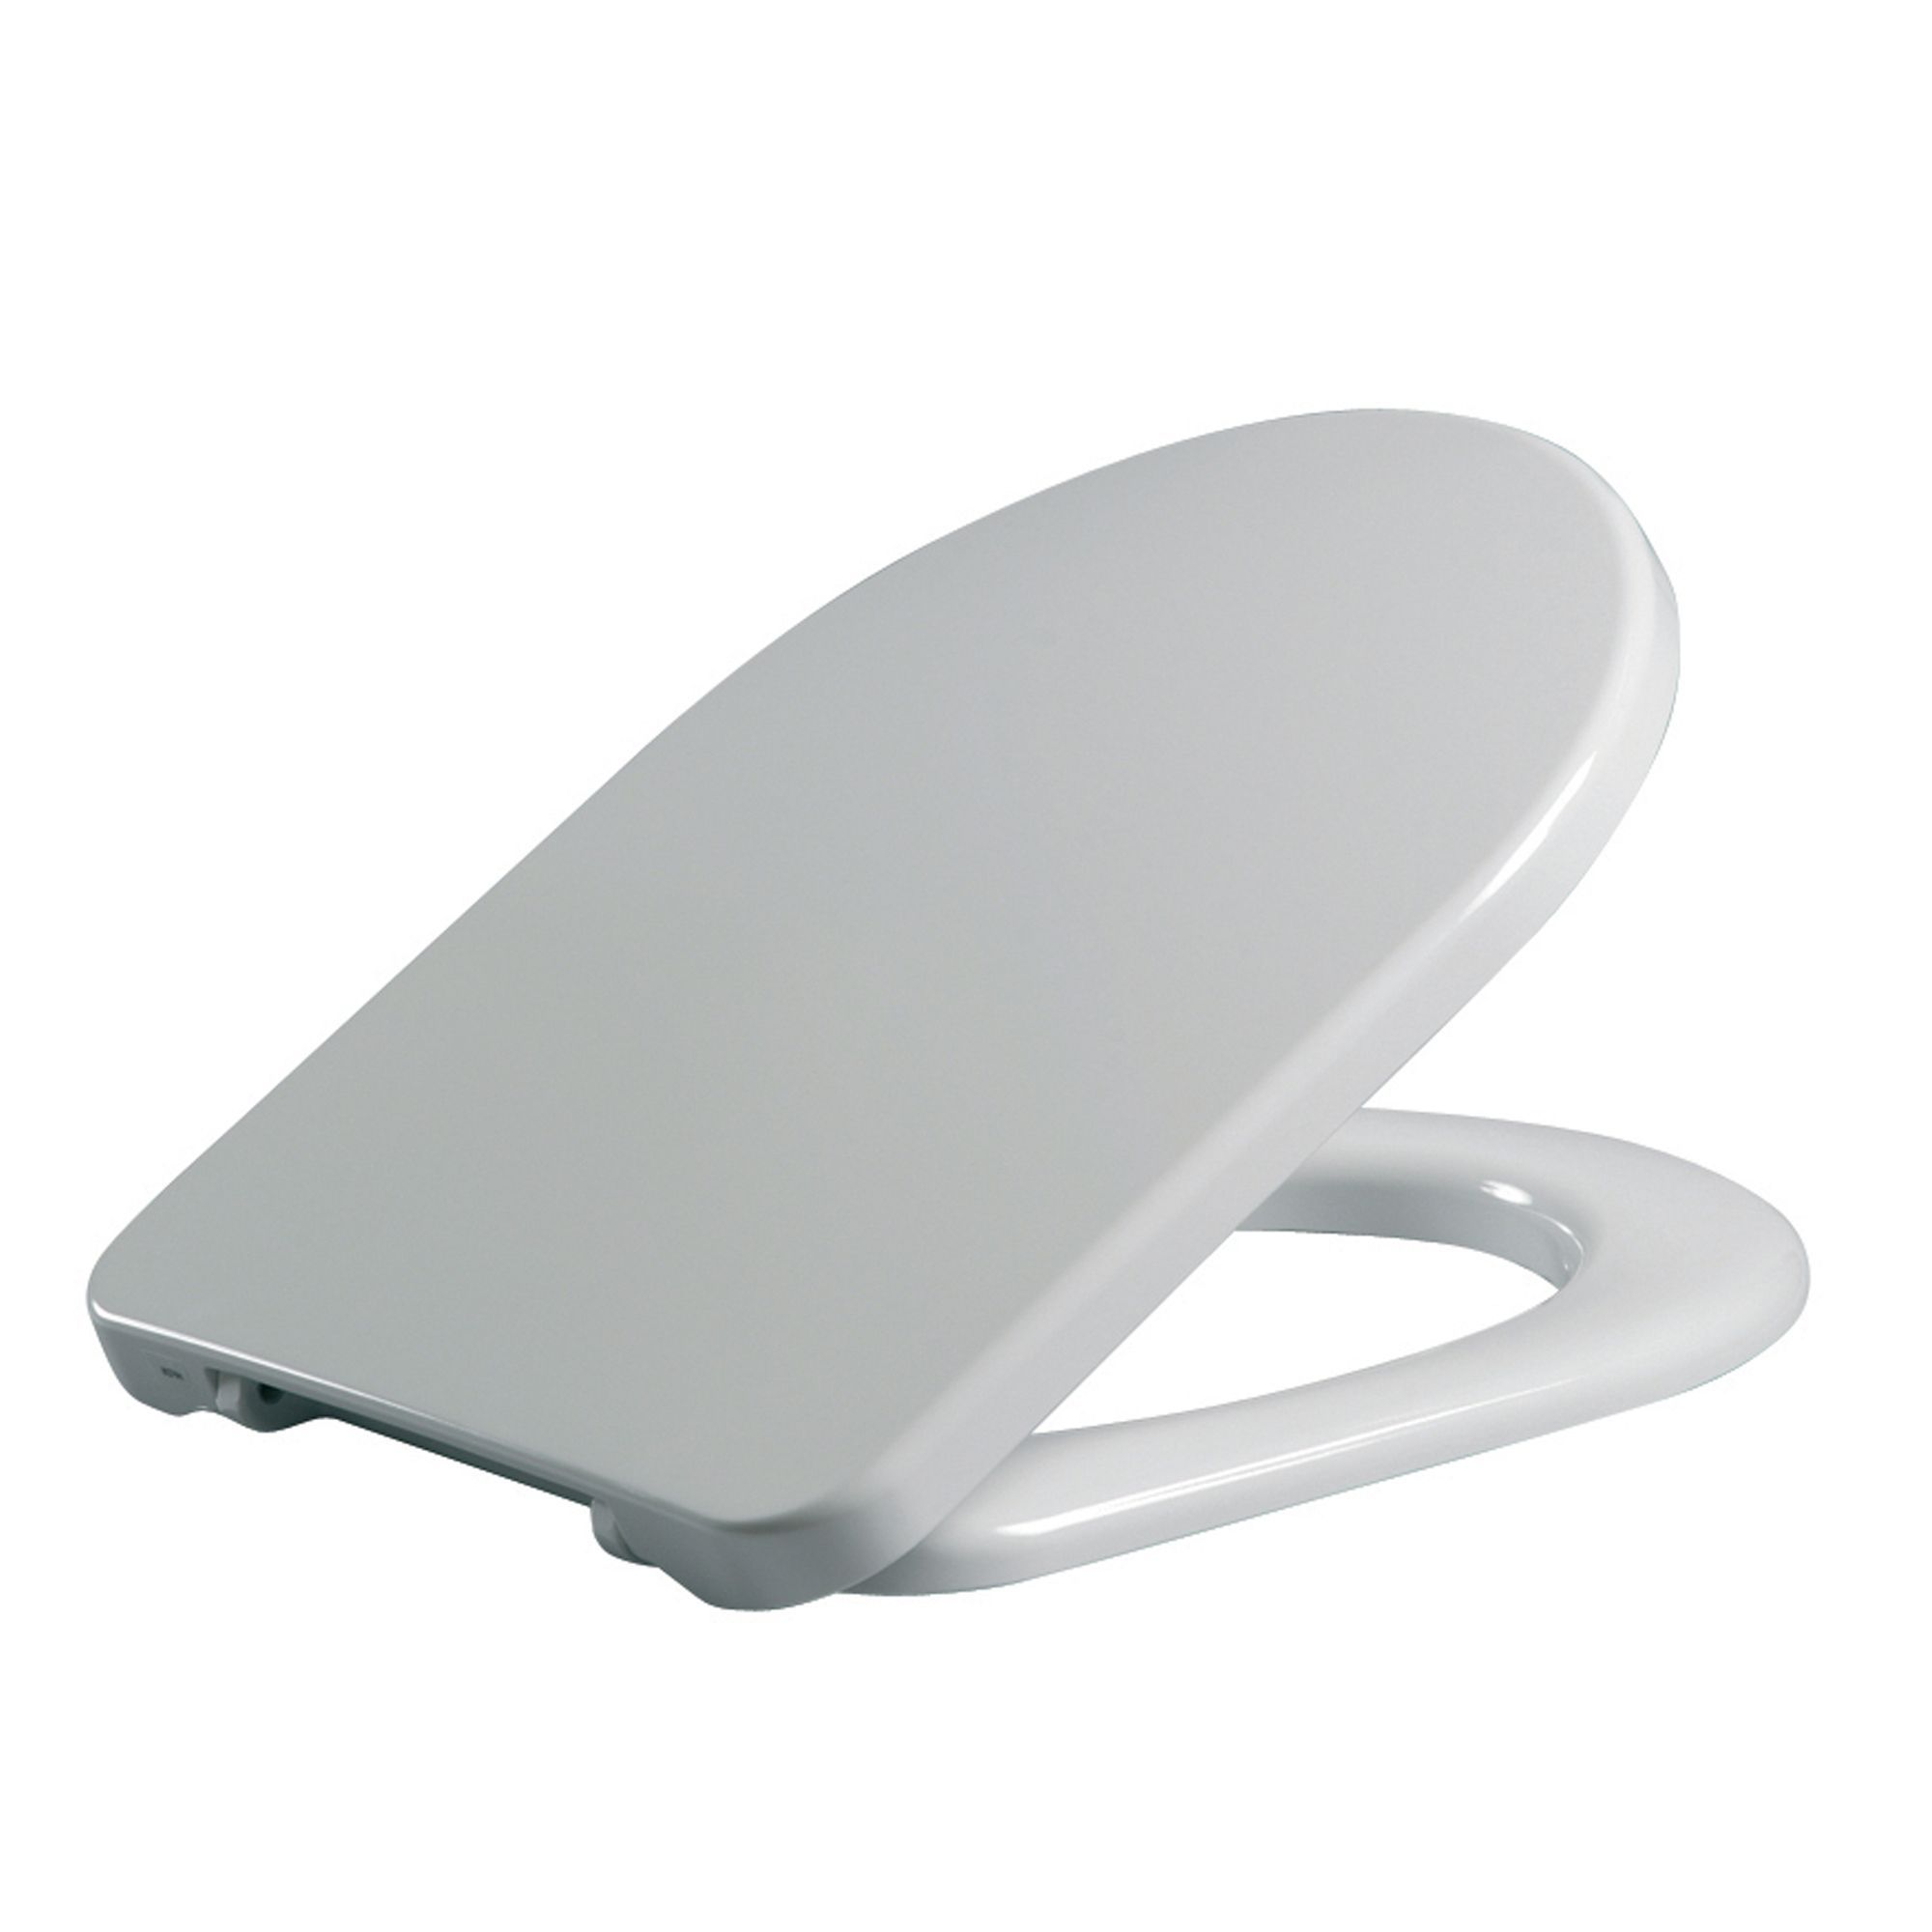 Peachy Cedo Sorrel White Toilet Seat Departments Diy At Bq Ibusinesslaw Wood Chair Design Ideas Ibusinesslaworg